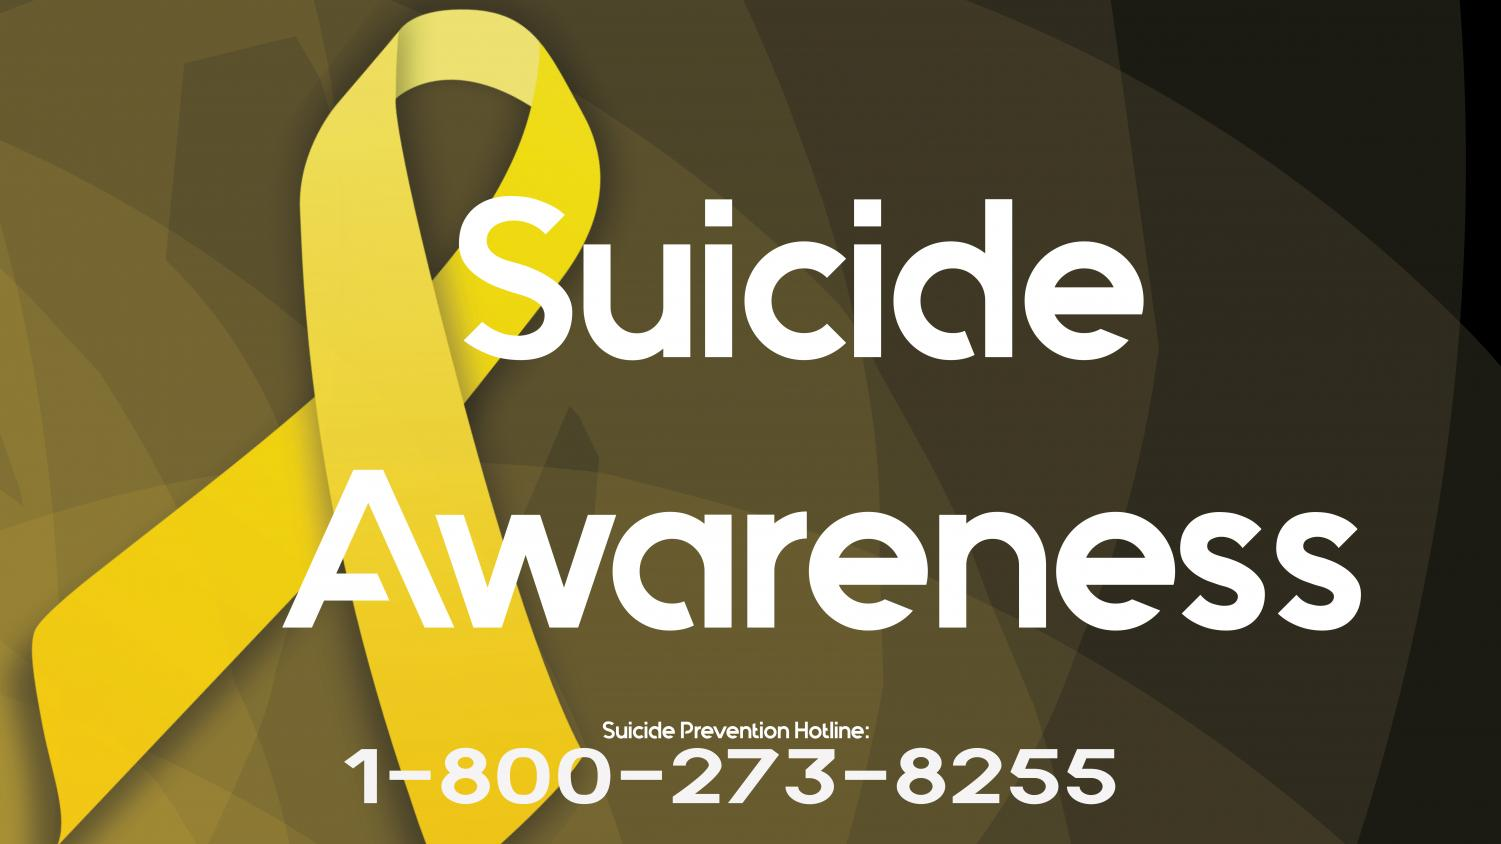 The end of September concludes National Suicide Awareness month in the U.S.